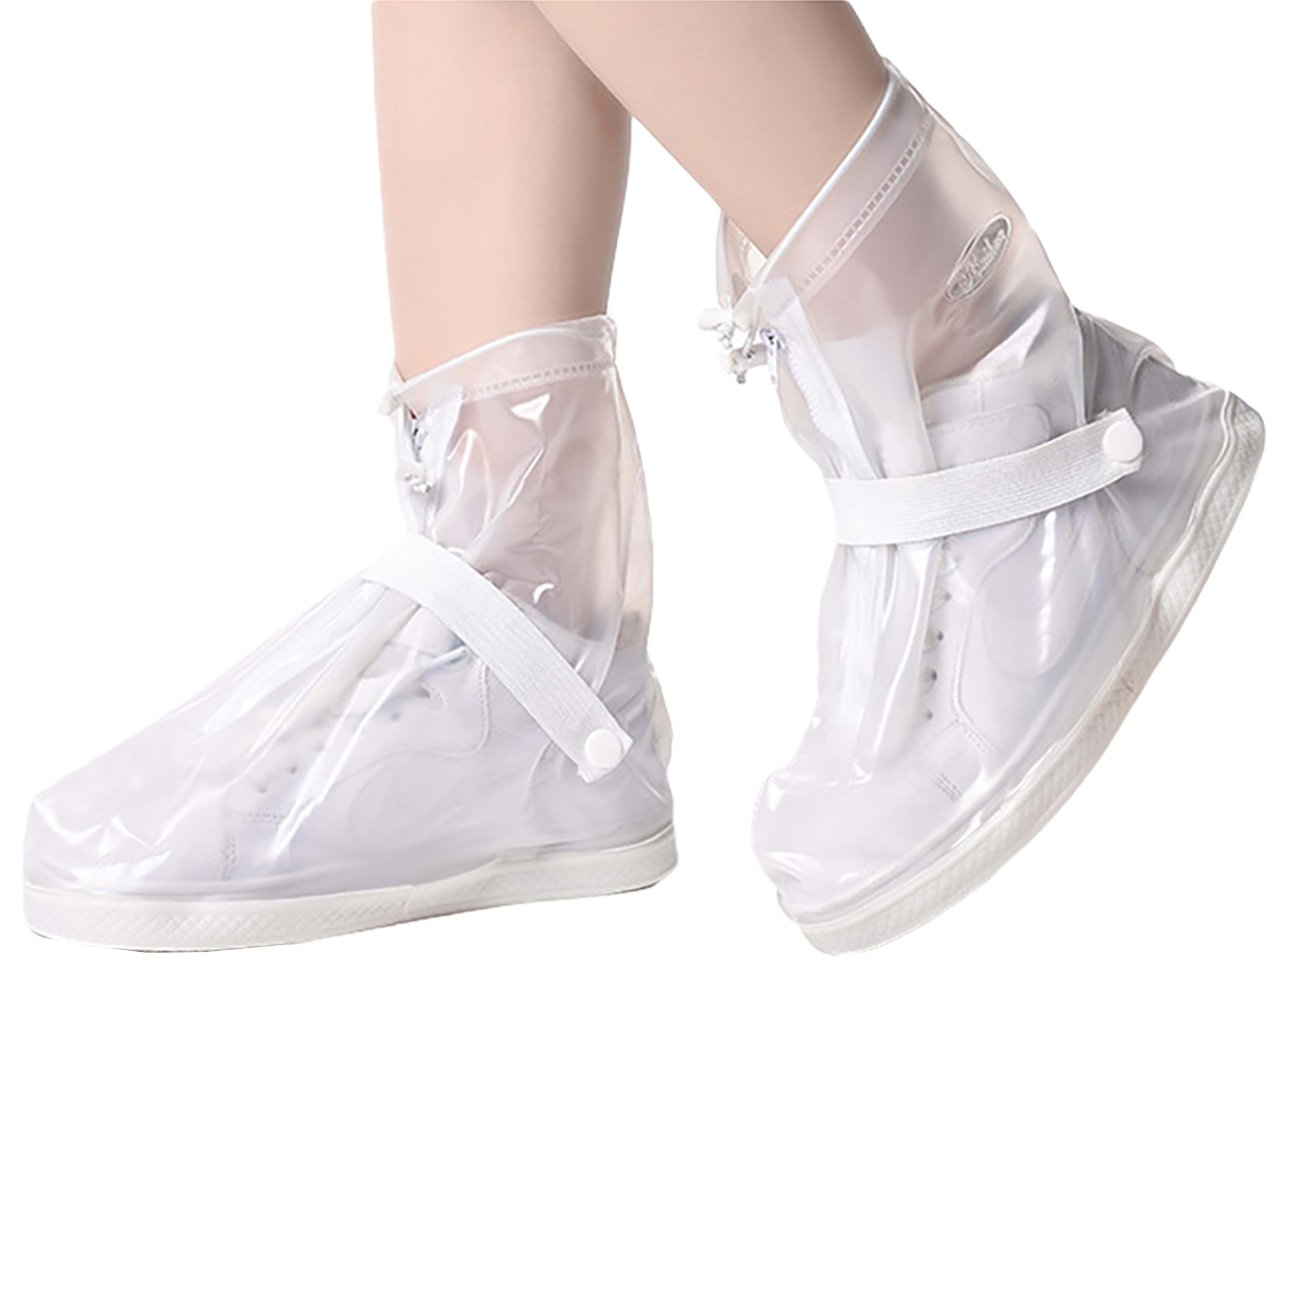 THEE Waterproof Shoes Cover Anti Slip Rain Shoes Cover Rainproof Full Protection Resuable